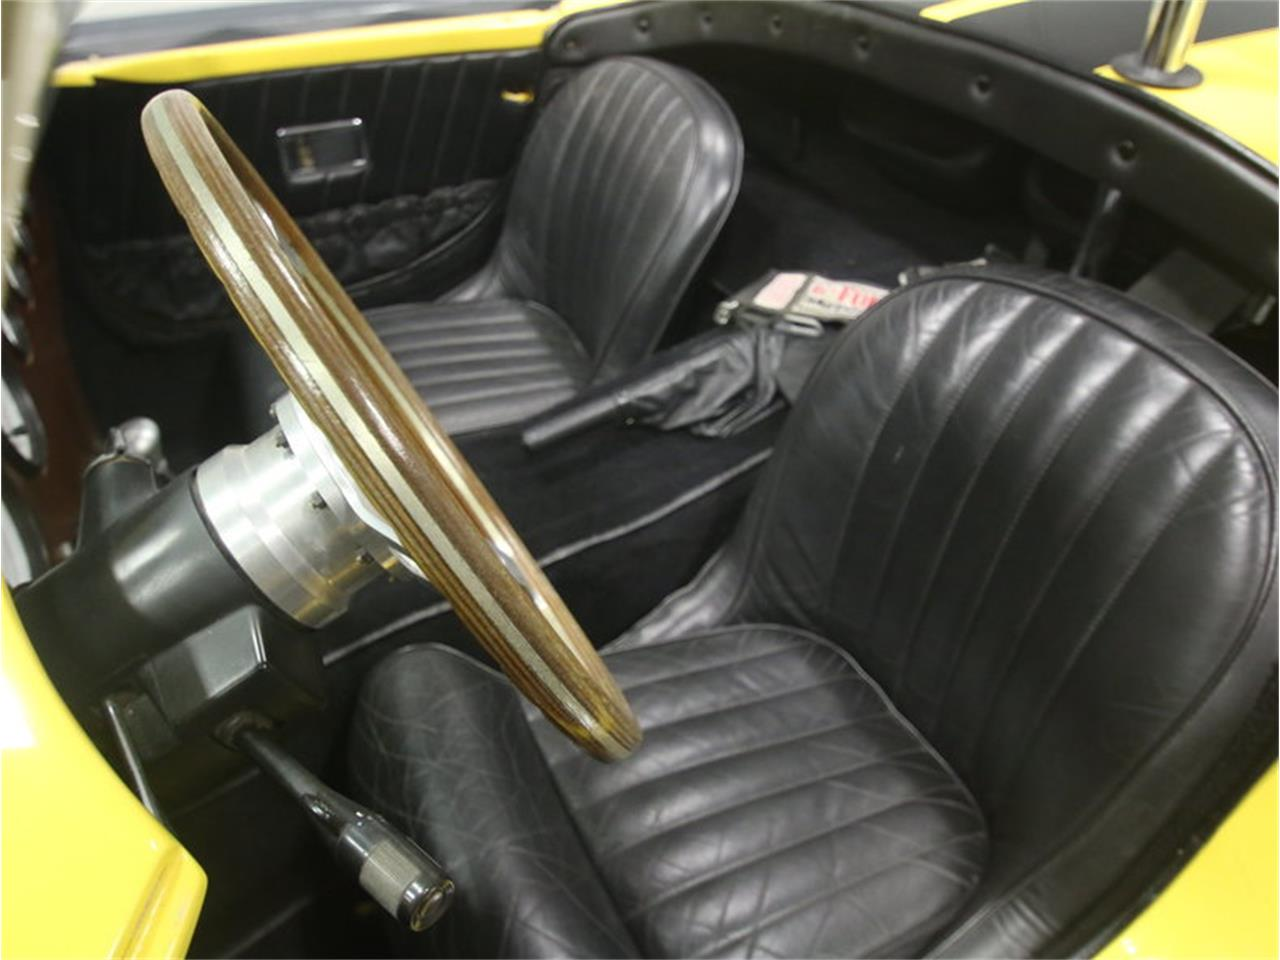 Large Picture of Classic 1966 Shelby Cobra Replica located in Lithia Springs Georgia - $34,995.00 Offered by Streetside Classics - Atlanta - LAUM